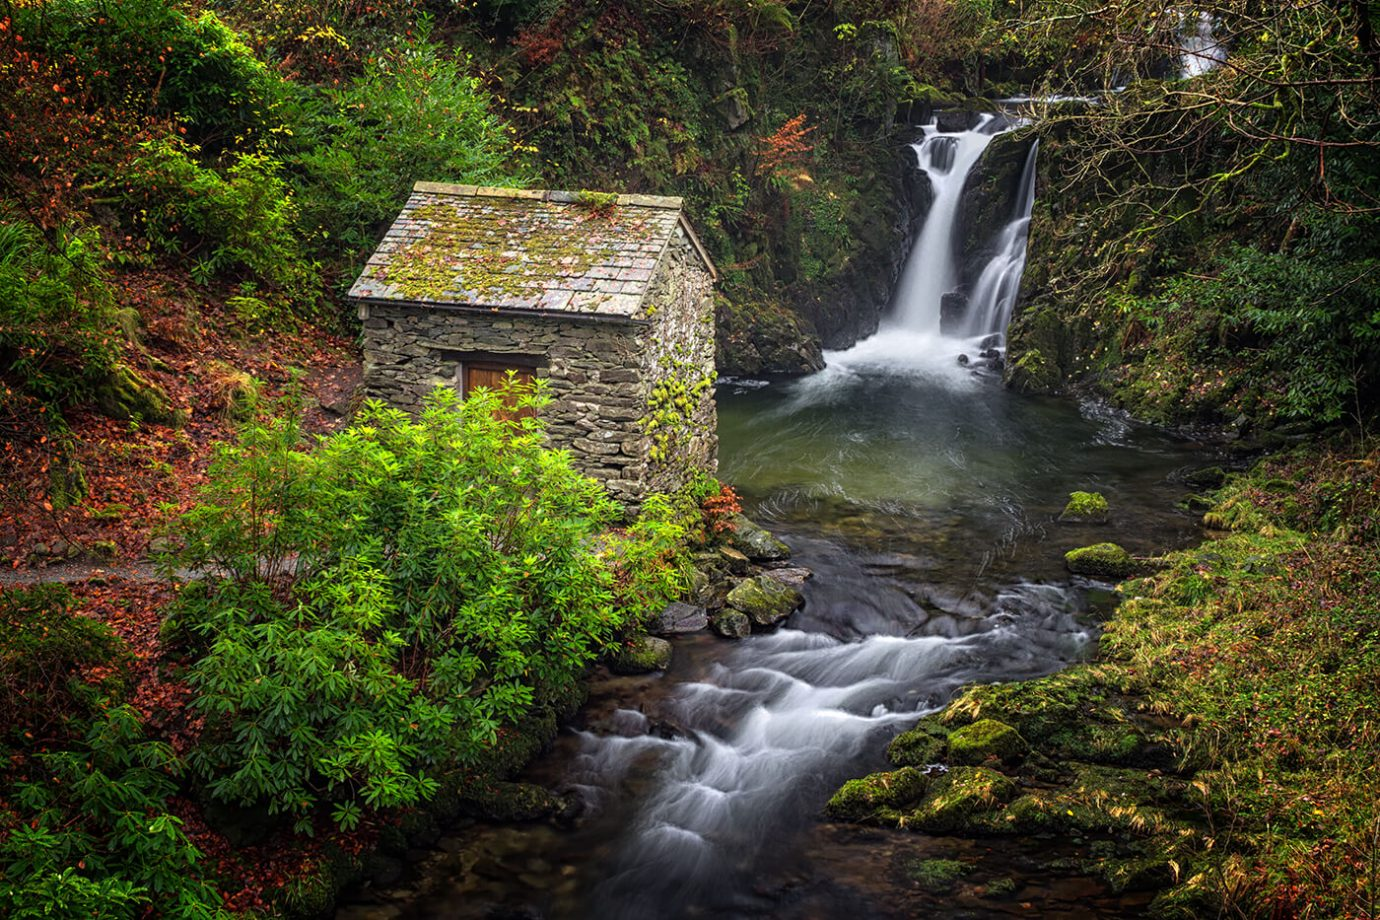 Rydal Falls and Grotto, Lake District